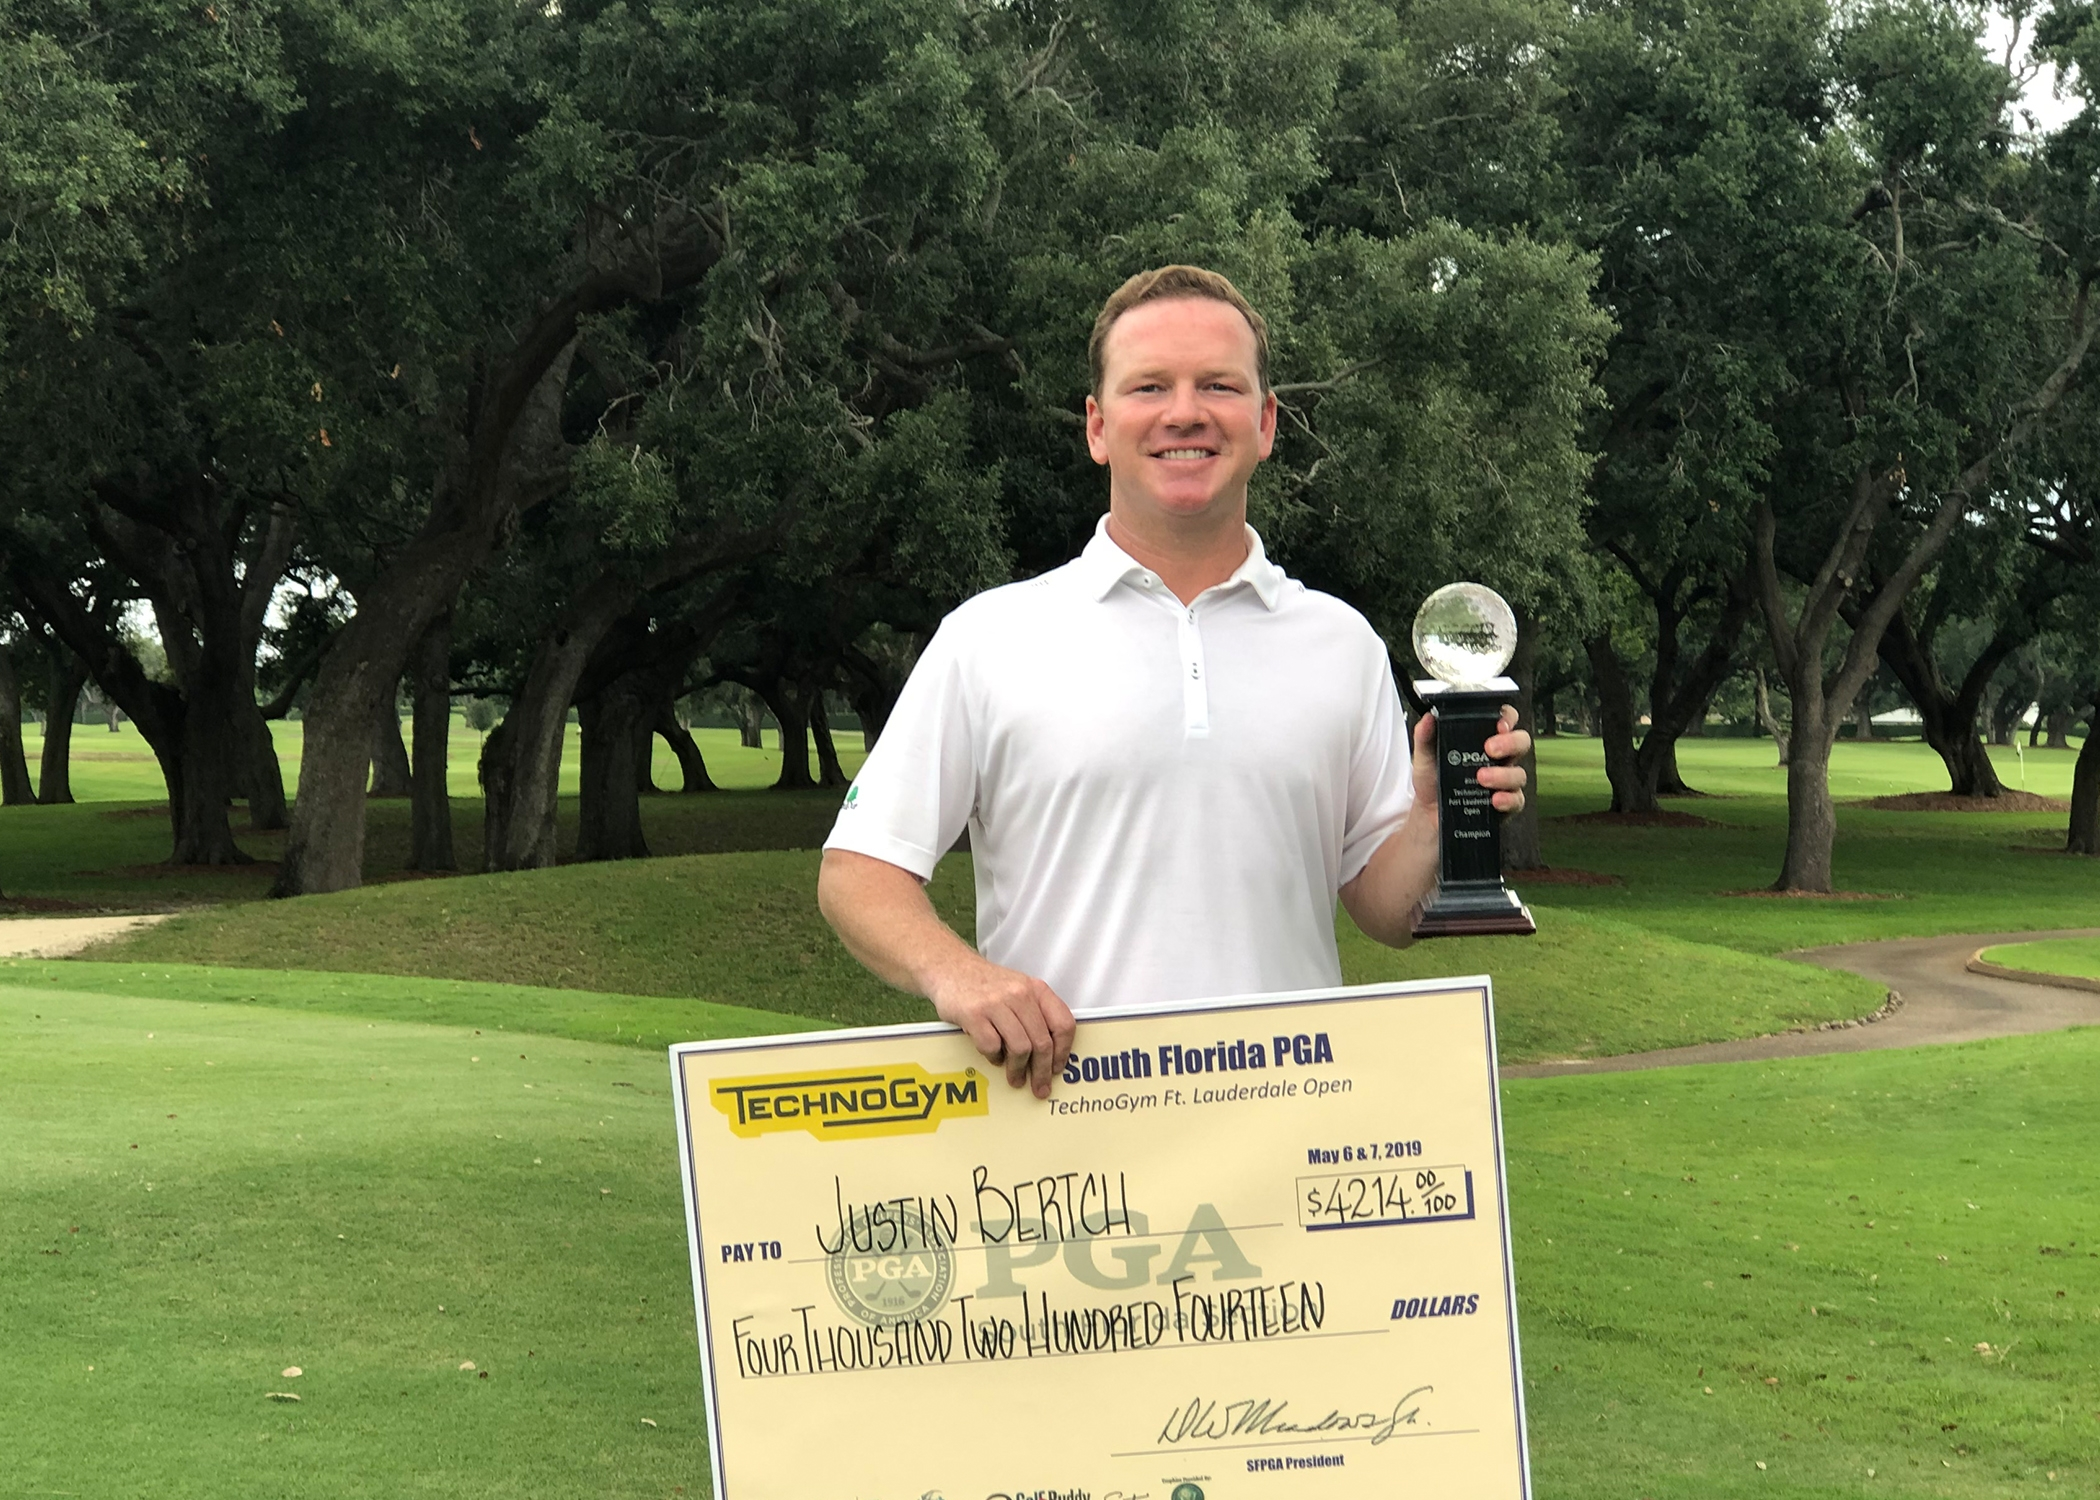 Bertsch of Naples Captures 2019 TechnoGym Fort Lauderdale Open Prior to Heading to the 2019 PGA Championship at Bethpage